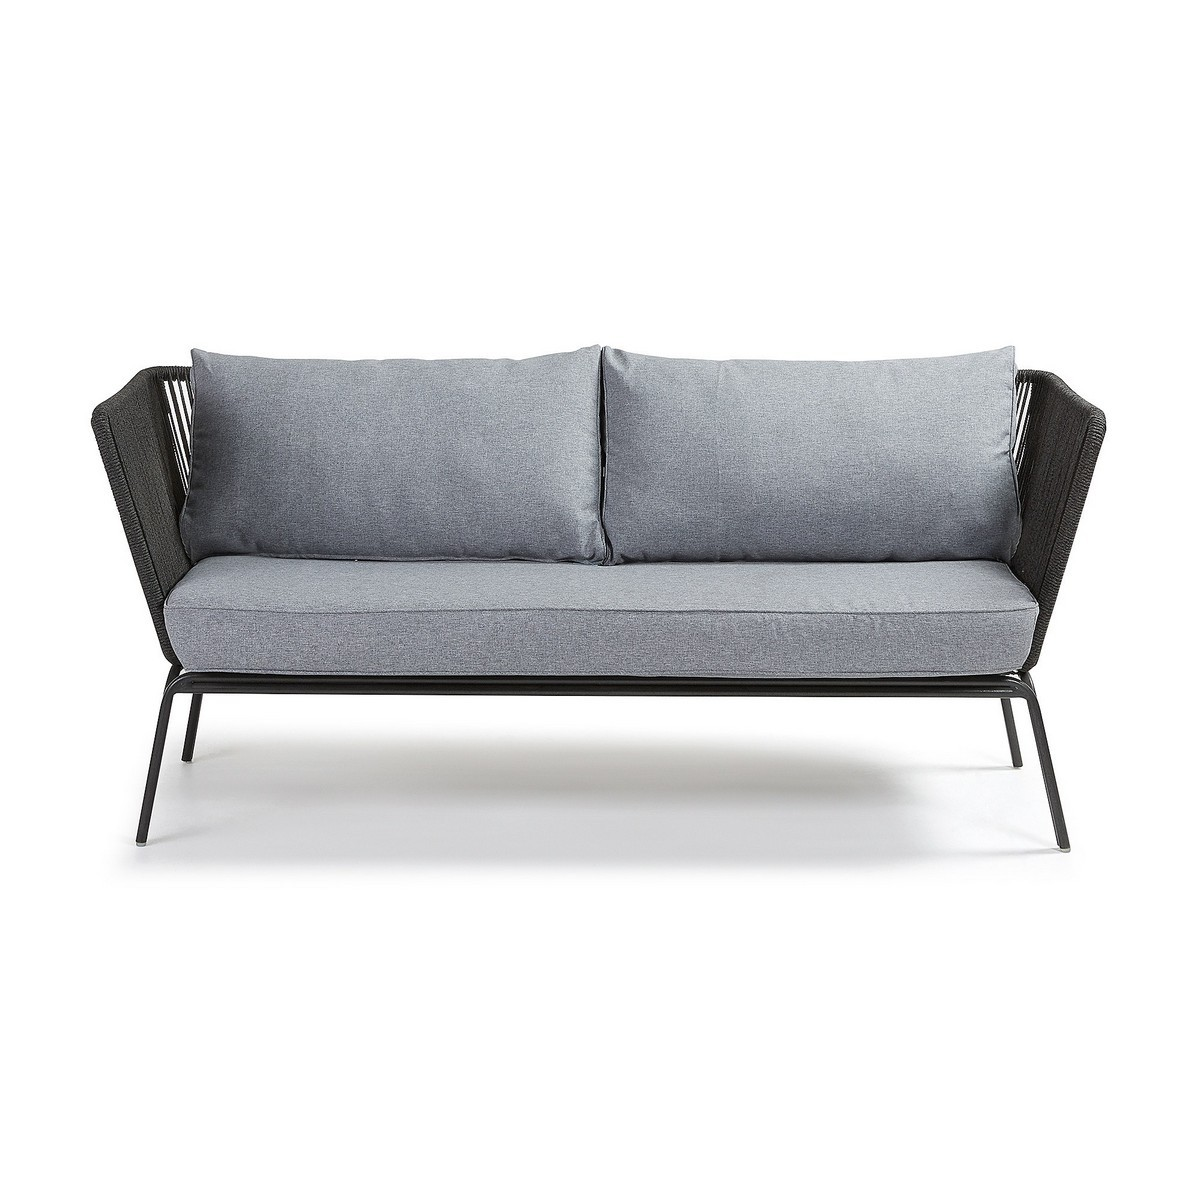 Liosia Rope & Steel 3 Seater Sofa